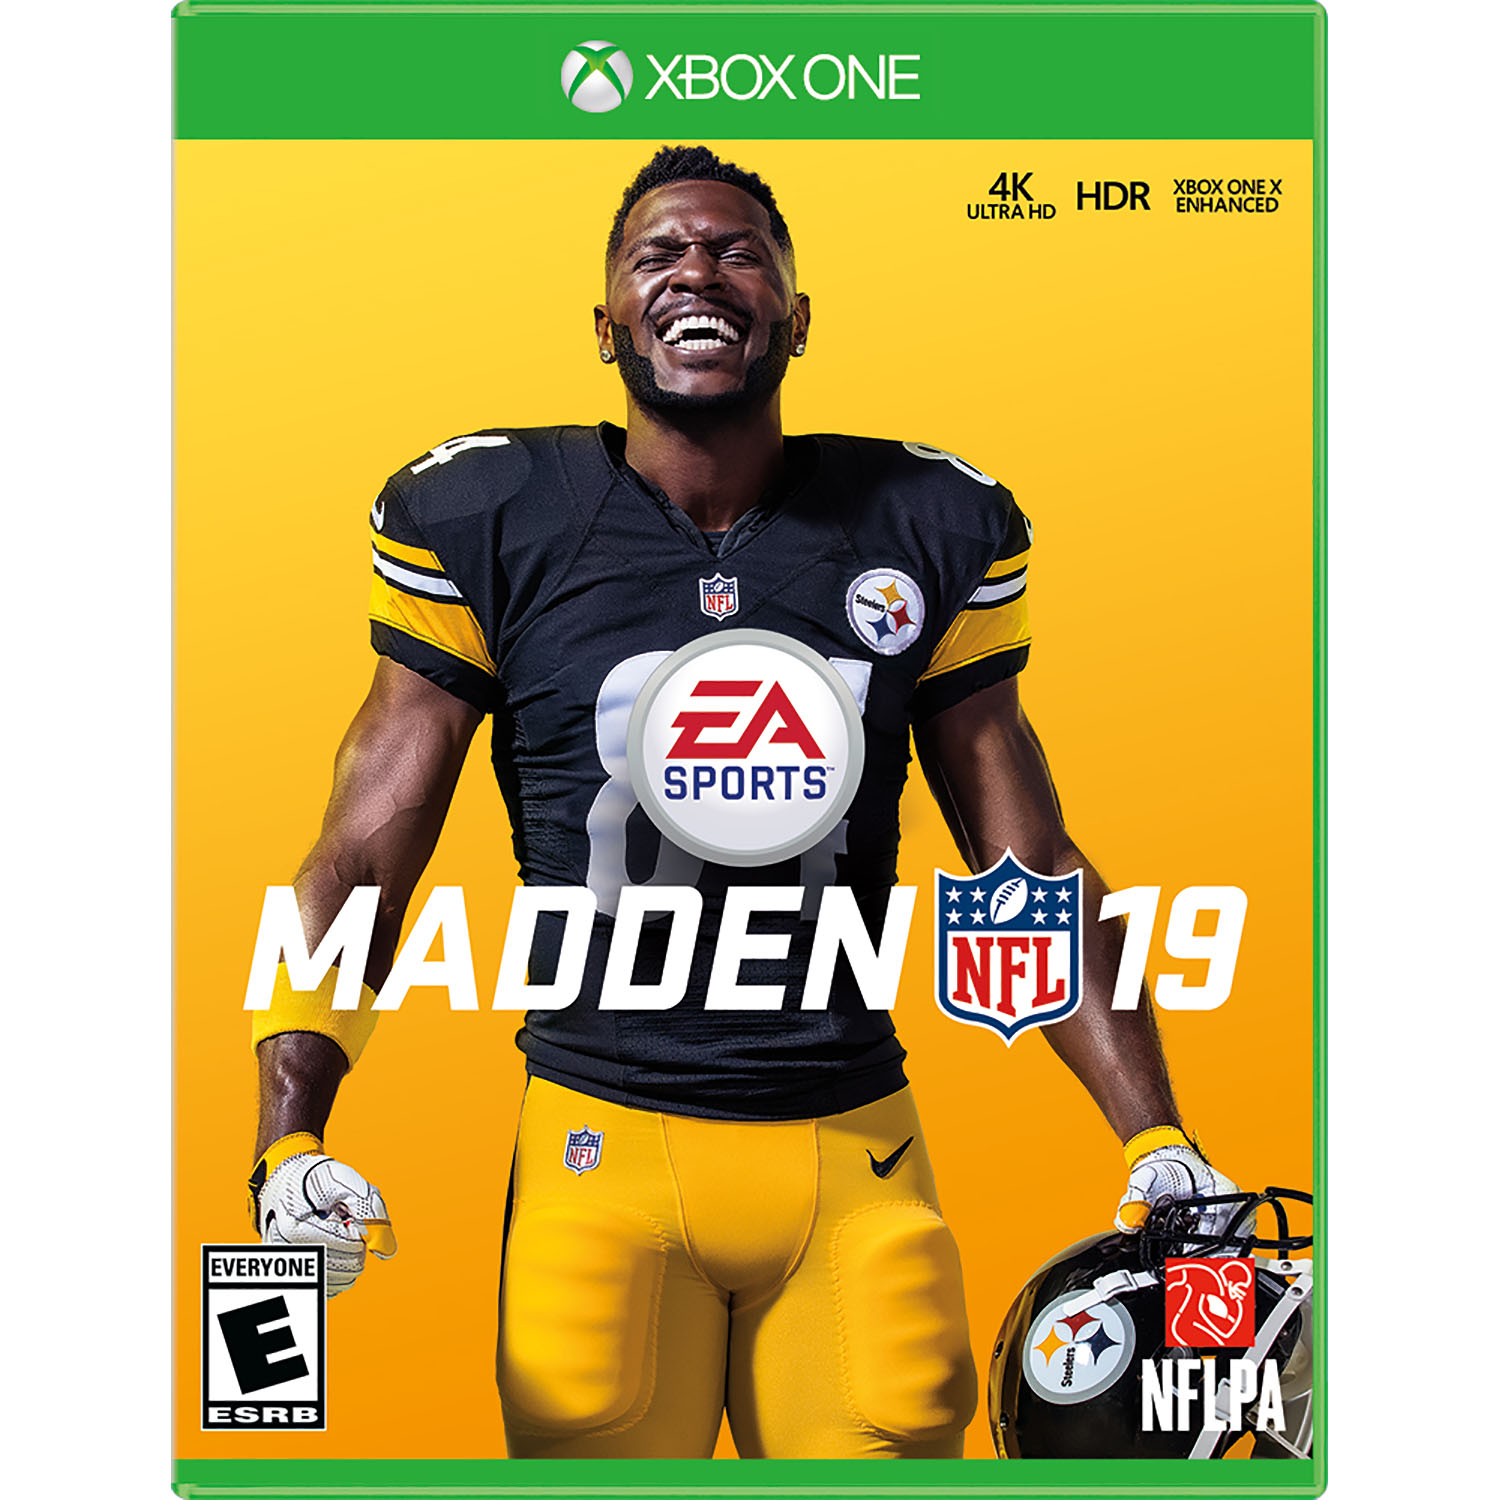 Madden NFL 19, Electronic Arts, Xbox One, REFURBISHED/PREOWNED